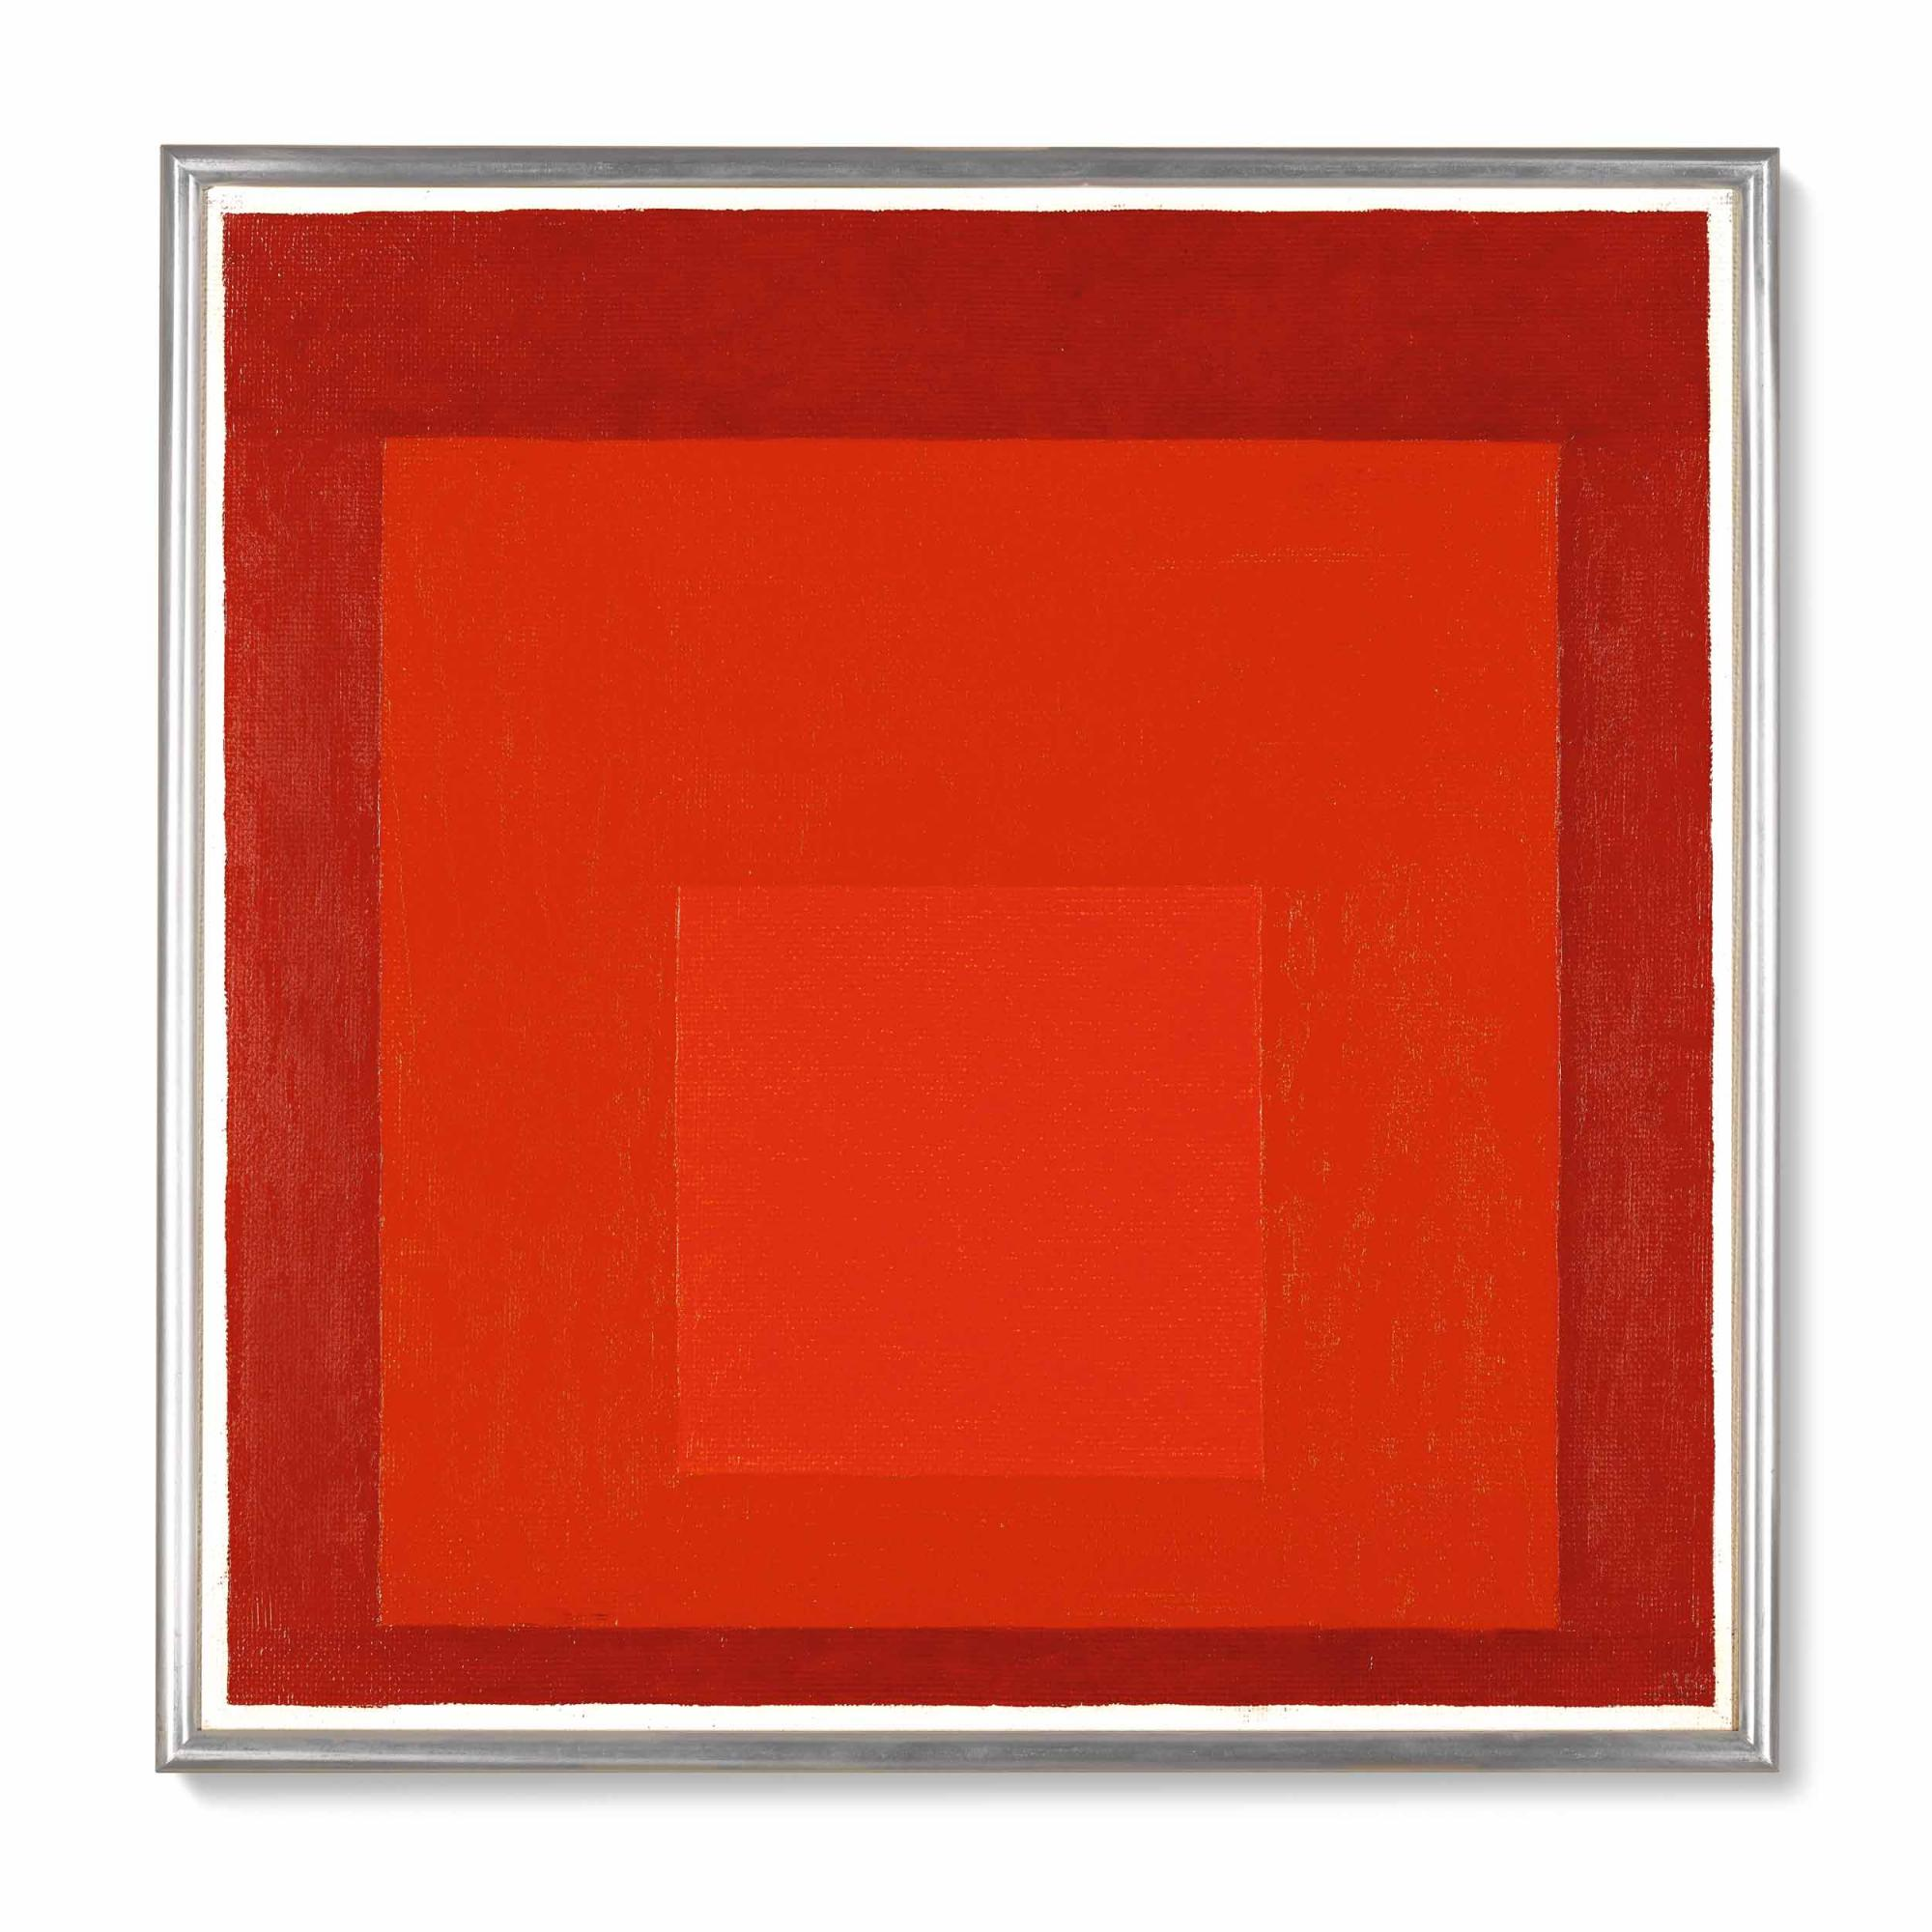 Lot-71-Josef-Albers-Study-for-Homage-to-the-Square-Distant-Glow.jpg